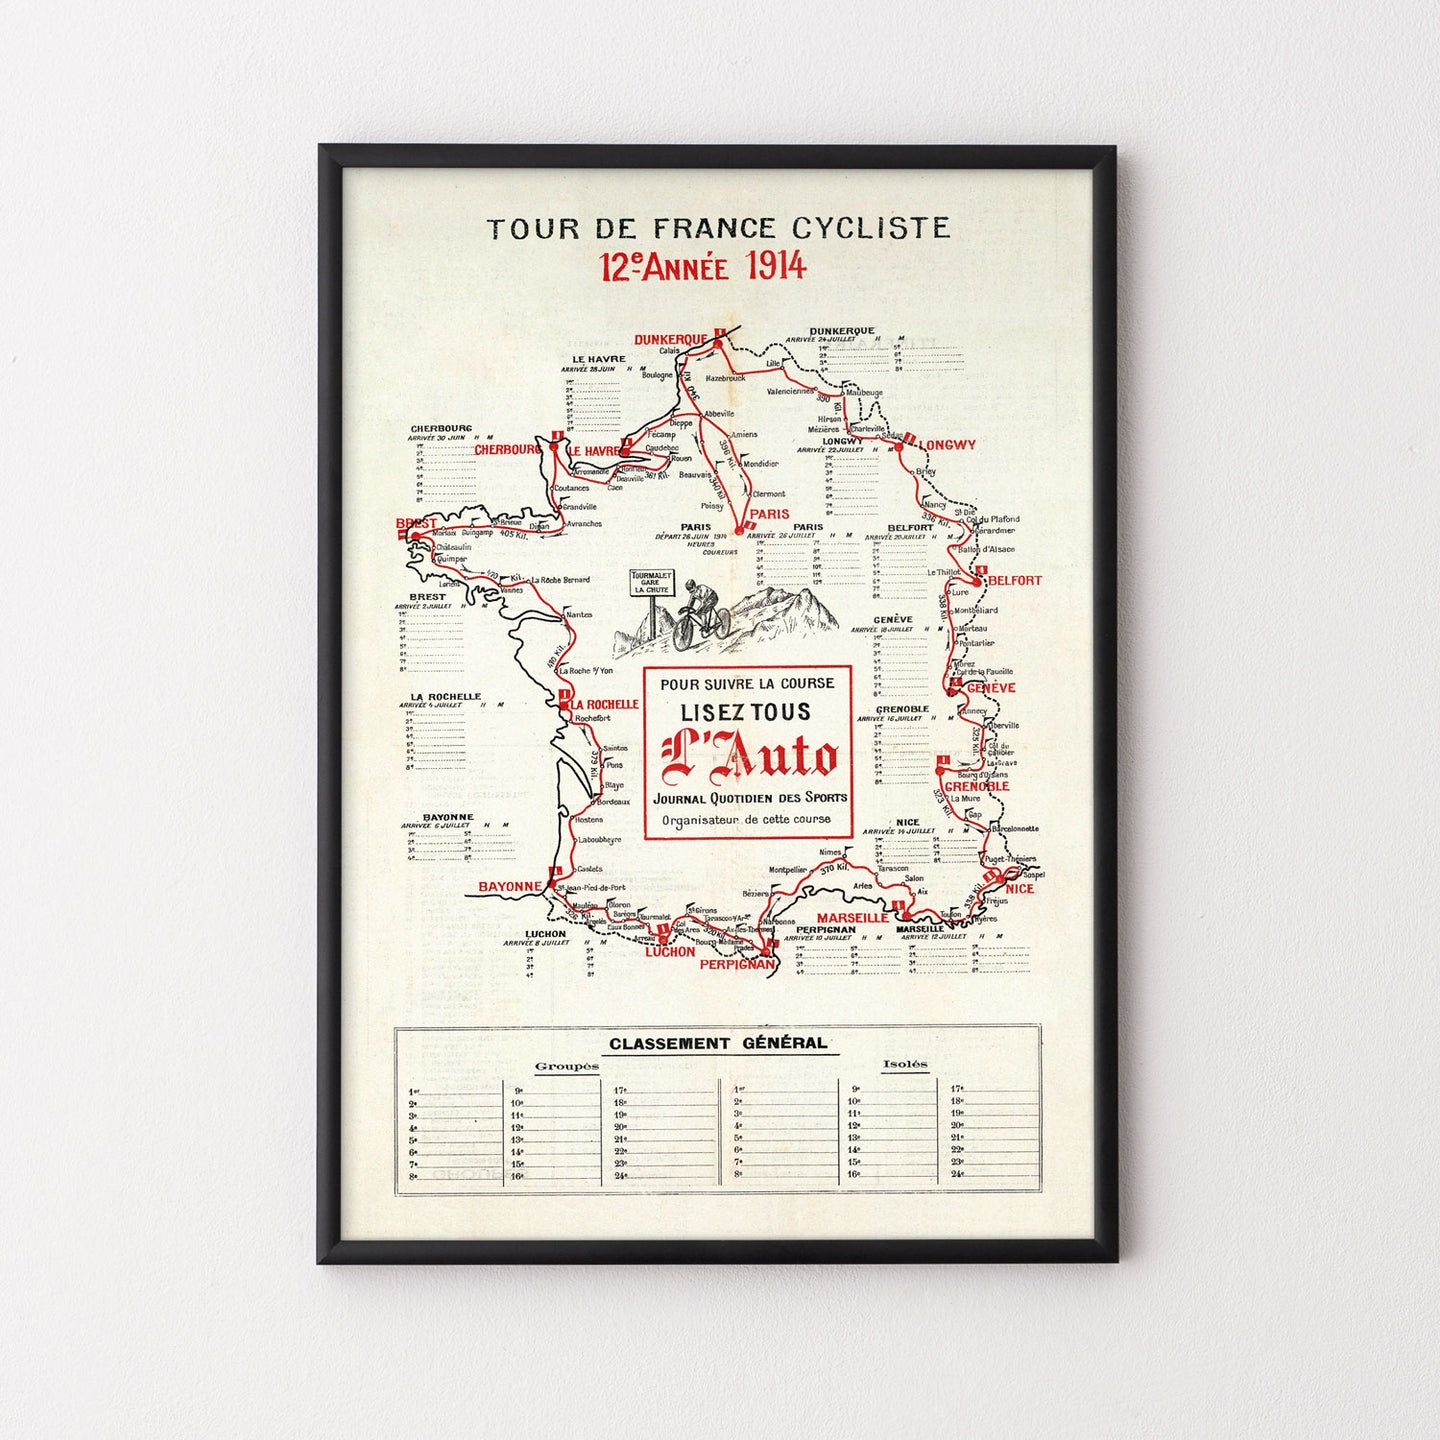 1914 Tour de France Map Poster – Gifts for Cyclists by the English Cyclist